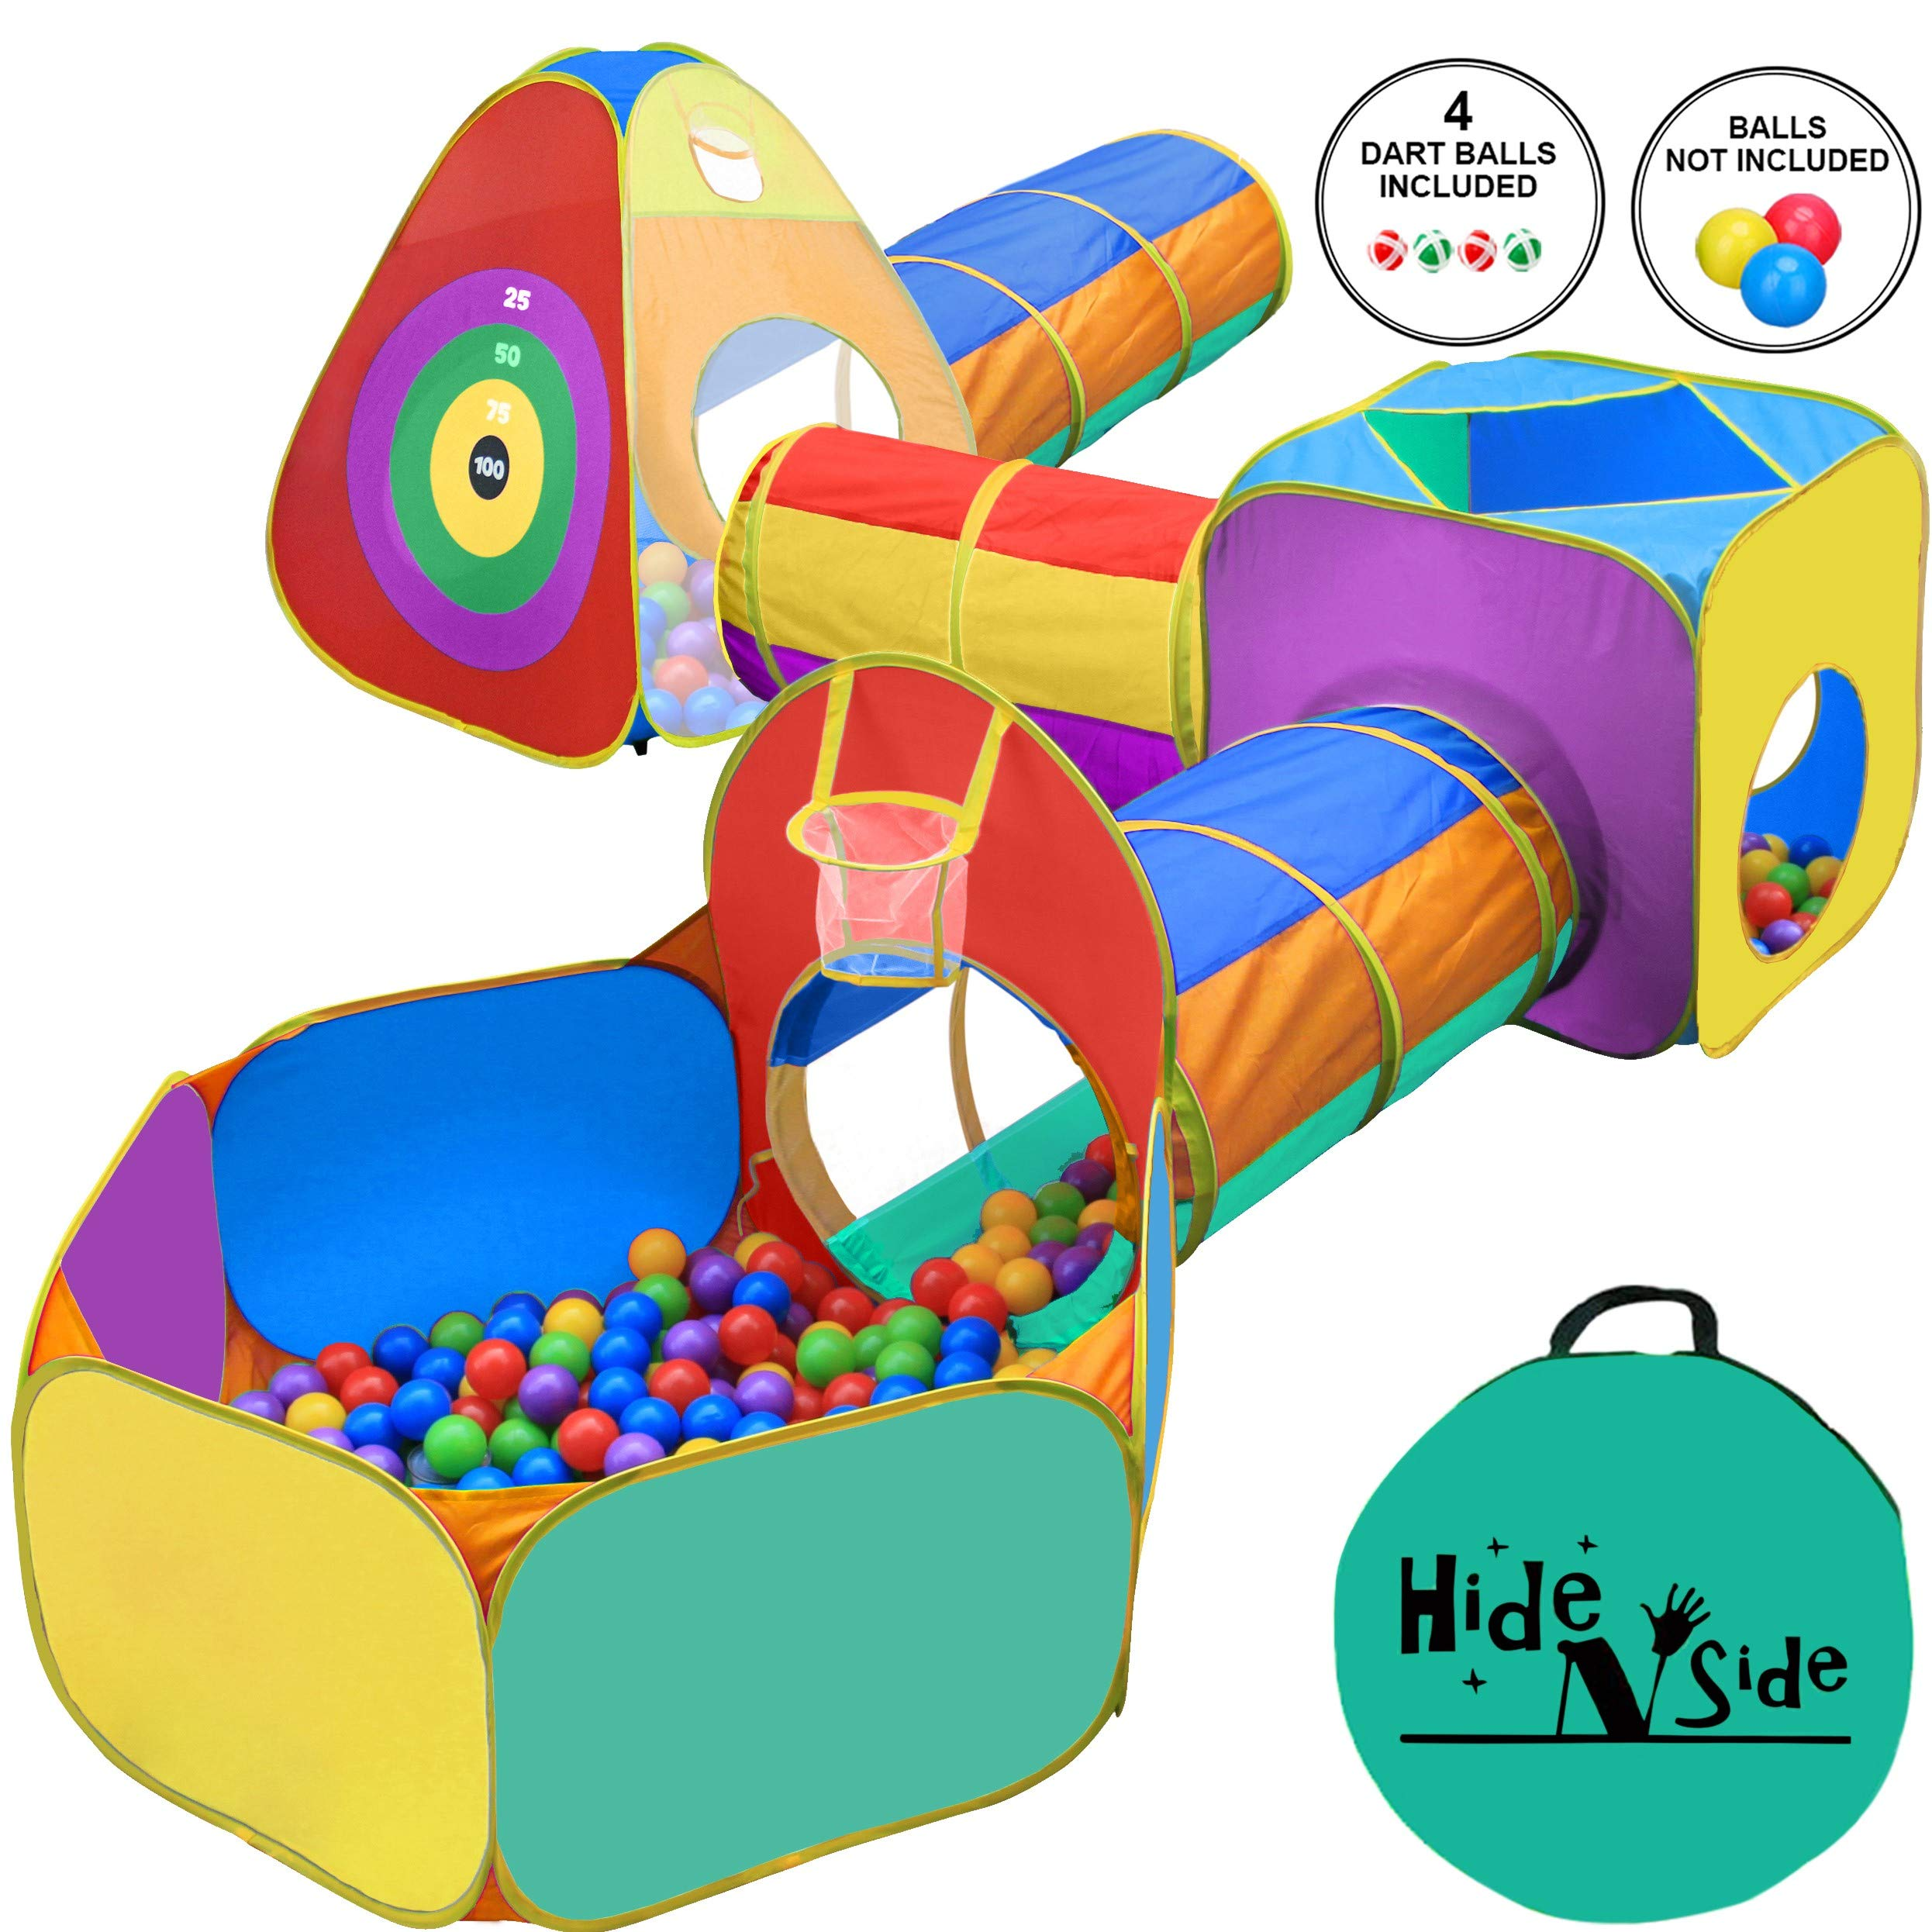 Gift for Toddler Boys & Girls, Ball Pit, Play Tent and Tunnels for Kids, Best Birthday Gift for 1 2 3 4 5 Year old, Pop Up Baby Play Toy, Target Game w/ 4 Dart balls, Indoor & Outdoor Use, Storage Bag by Hide N Side